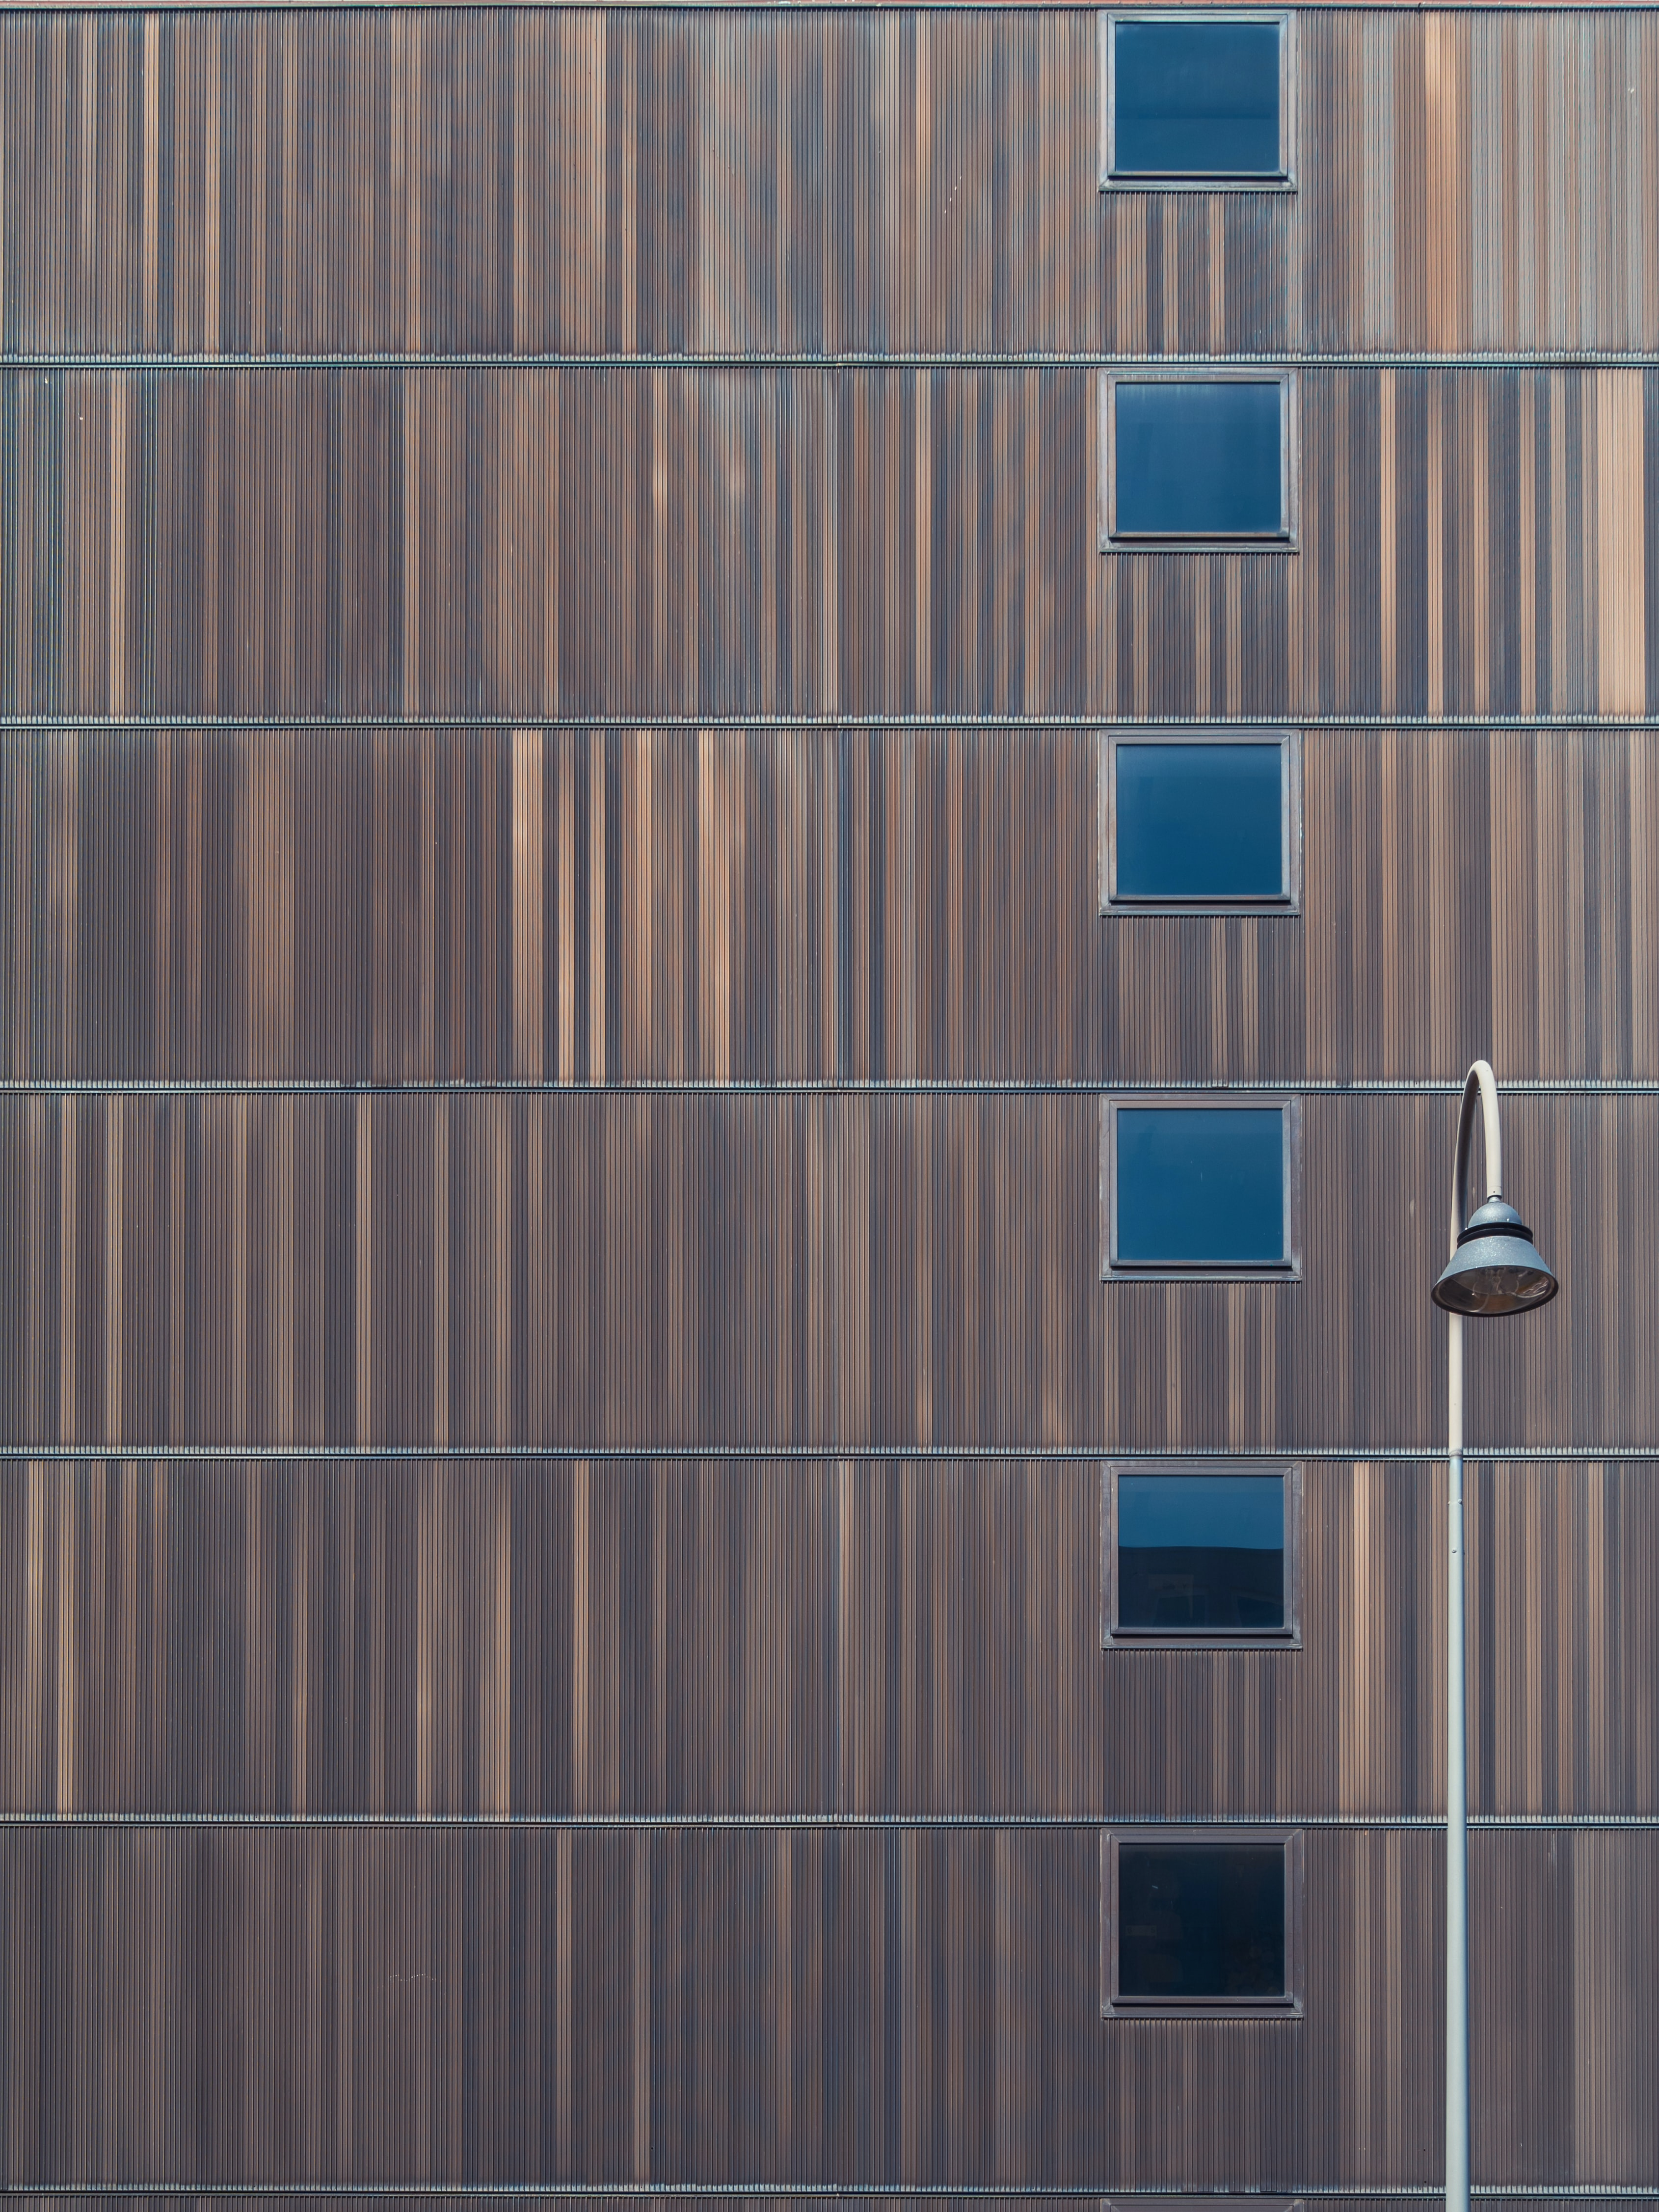 minimalist photography of arch post lamp near high-rise building